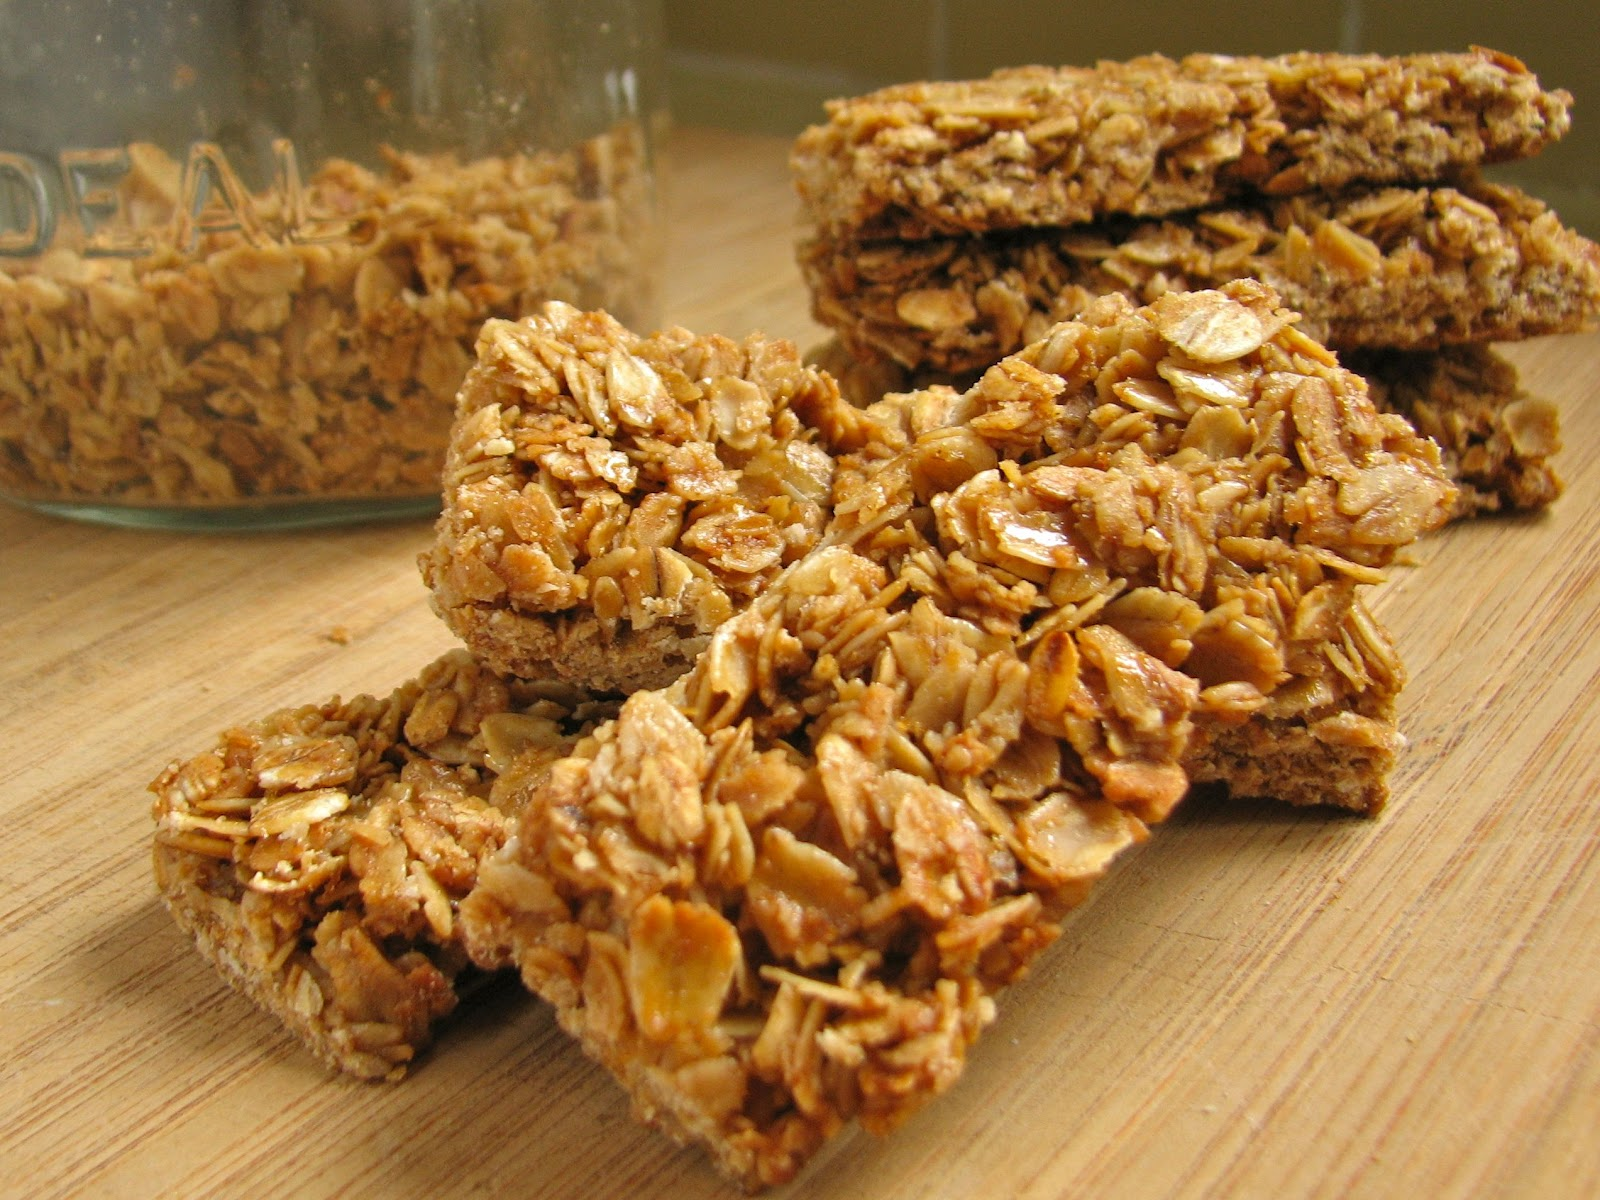 ... me there to find this great granola bar recipe as well as many more